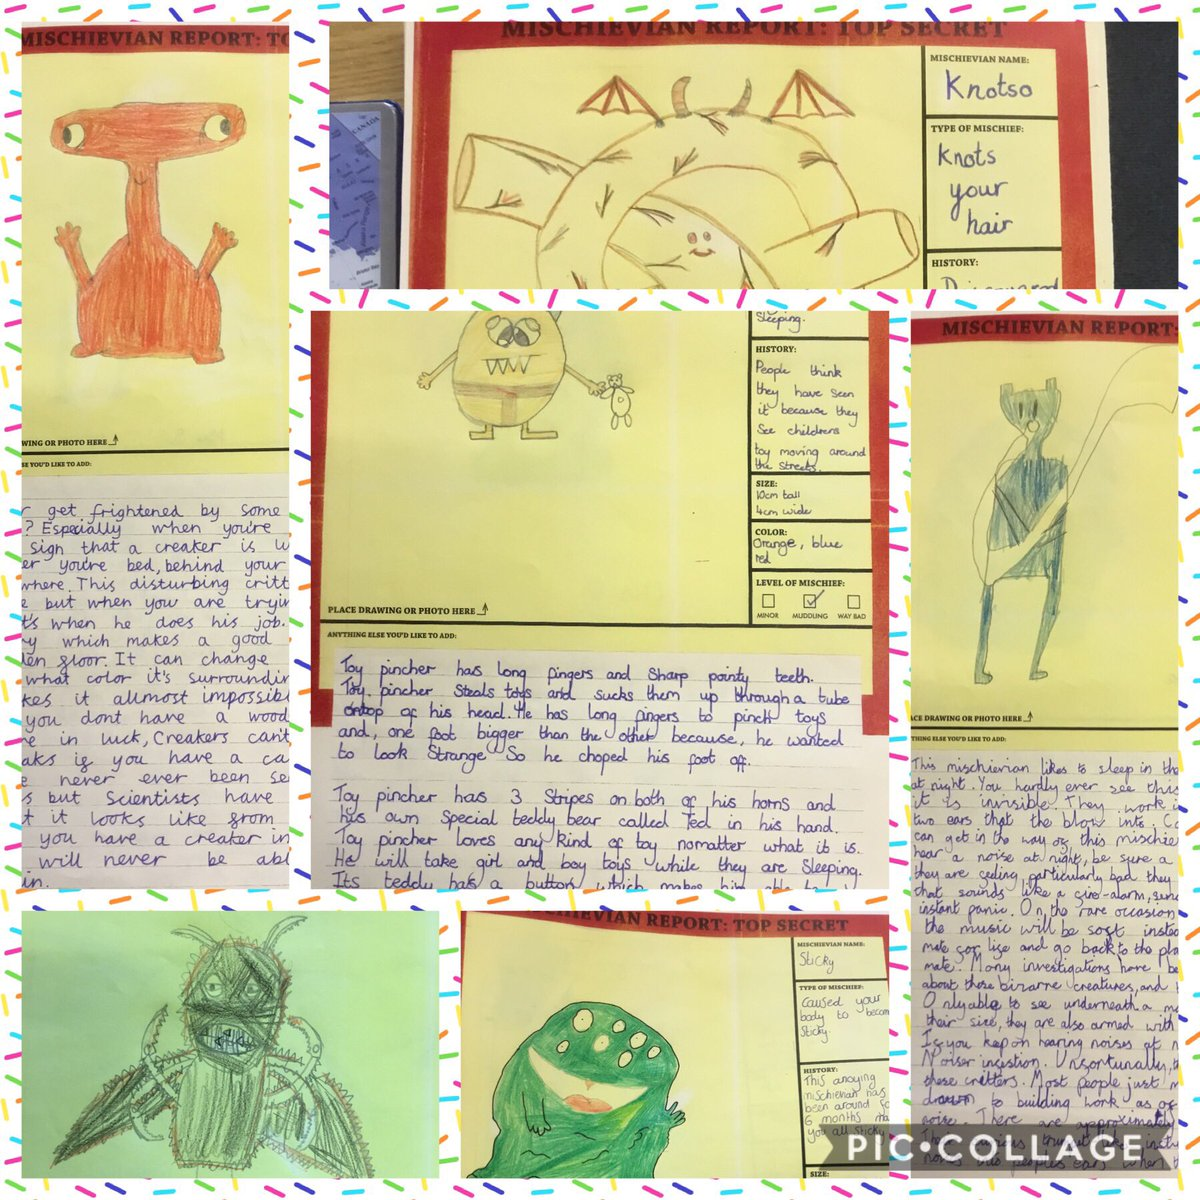 test Twitter Media - We have immersed ourselves in the world of The Mischieveans today! Did you know all of these creatures cause us so much trouble?! @heybilljoyce #gorseyenglish #gorseybookclub https://t.co/KdCXVKPRSn